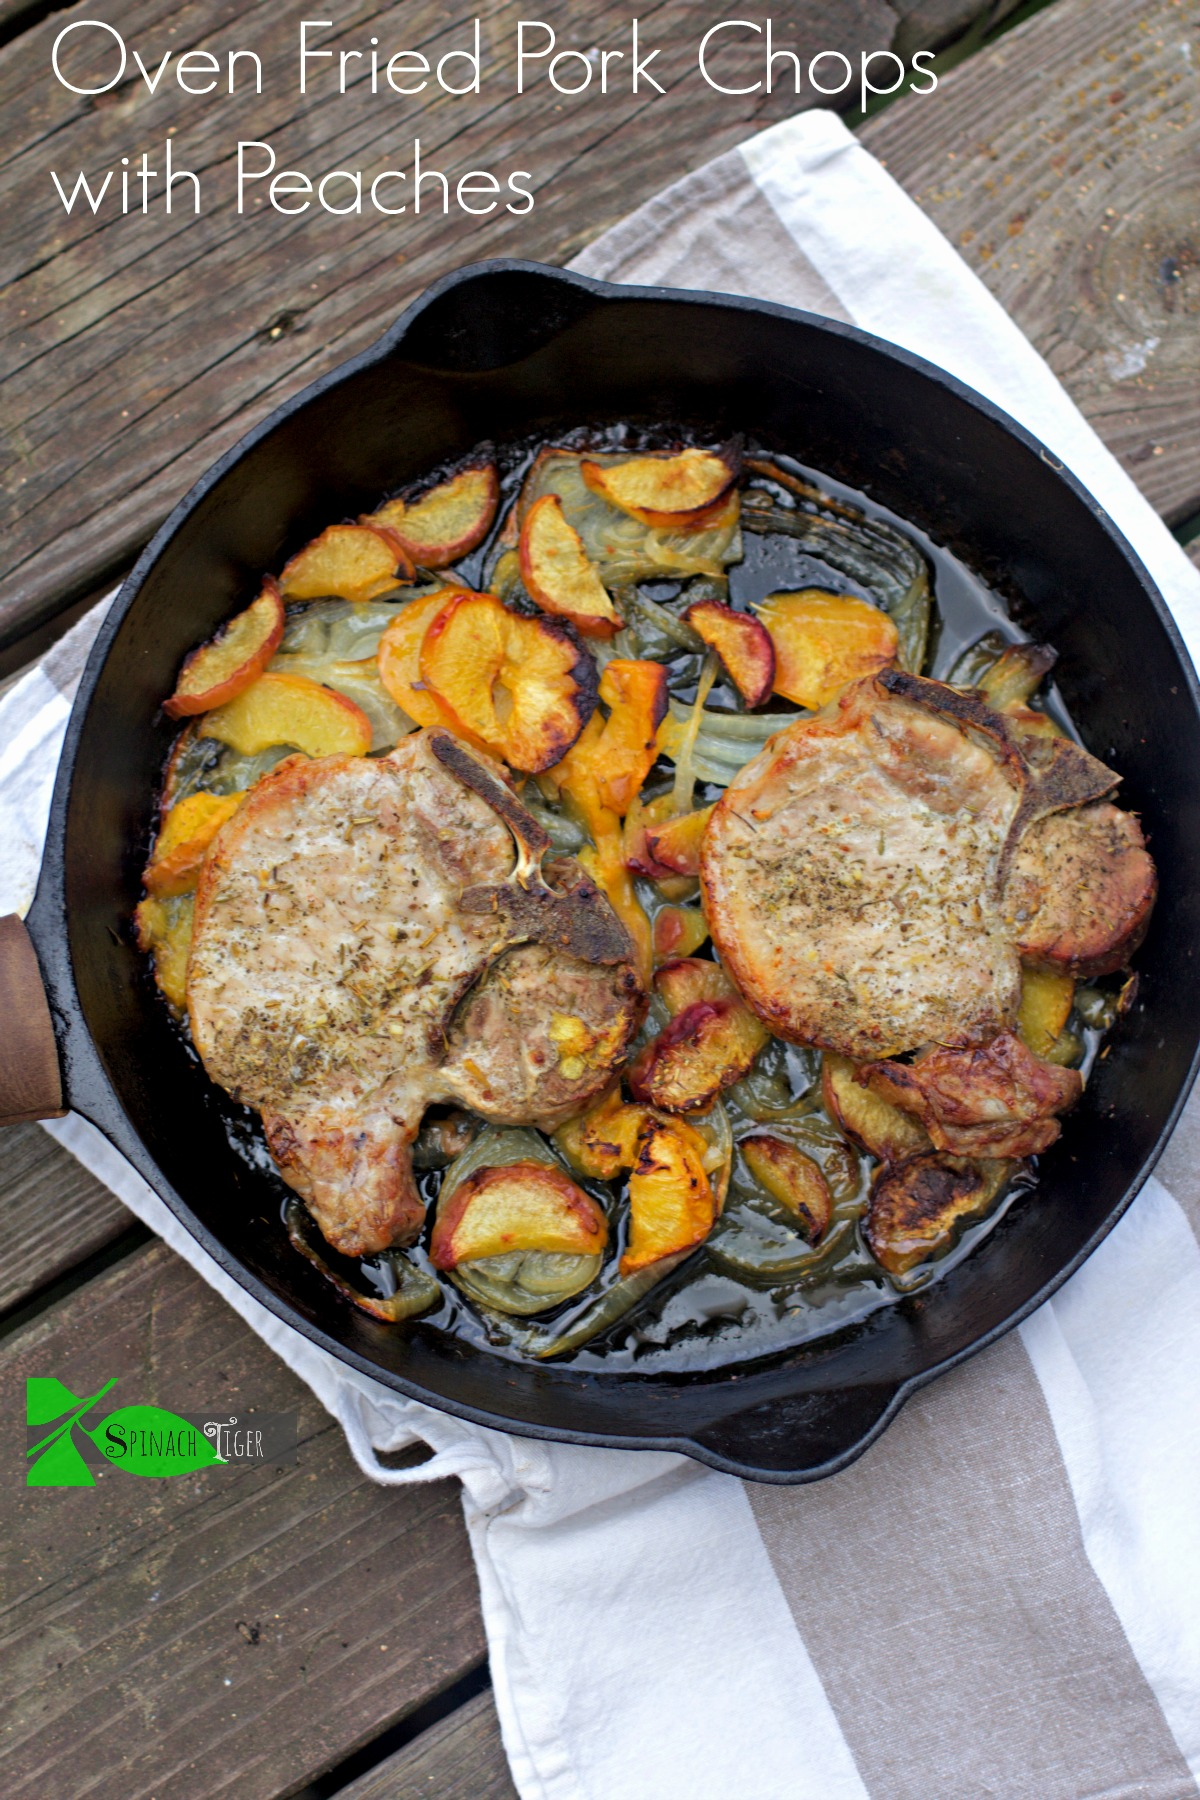 Tender pork chops baked in oven with peaches or nectarines. Transition summer into Fall with delicious brined and oven baked pork chops with peaches. #ovenfriedporkchops #peaches #porkchoprecipe #spinachtiger via @angelaroberts